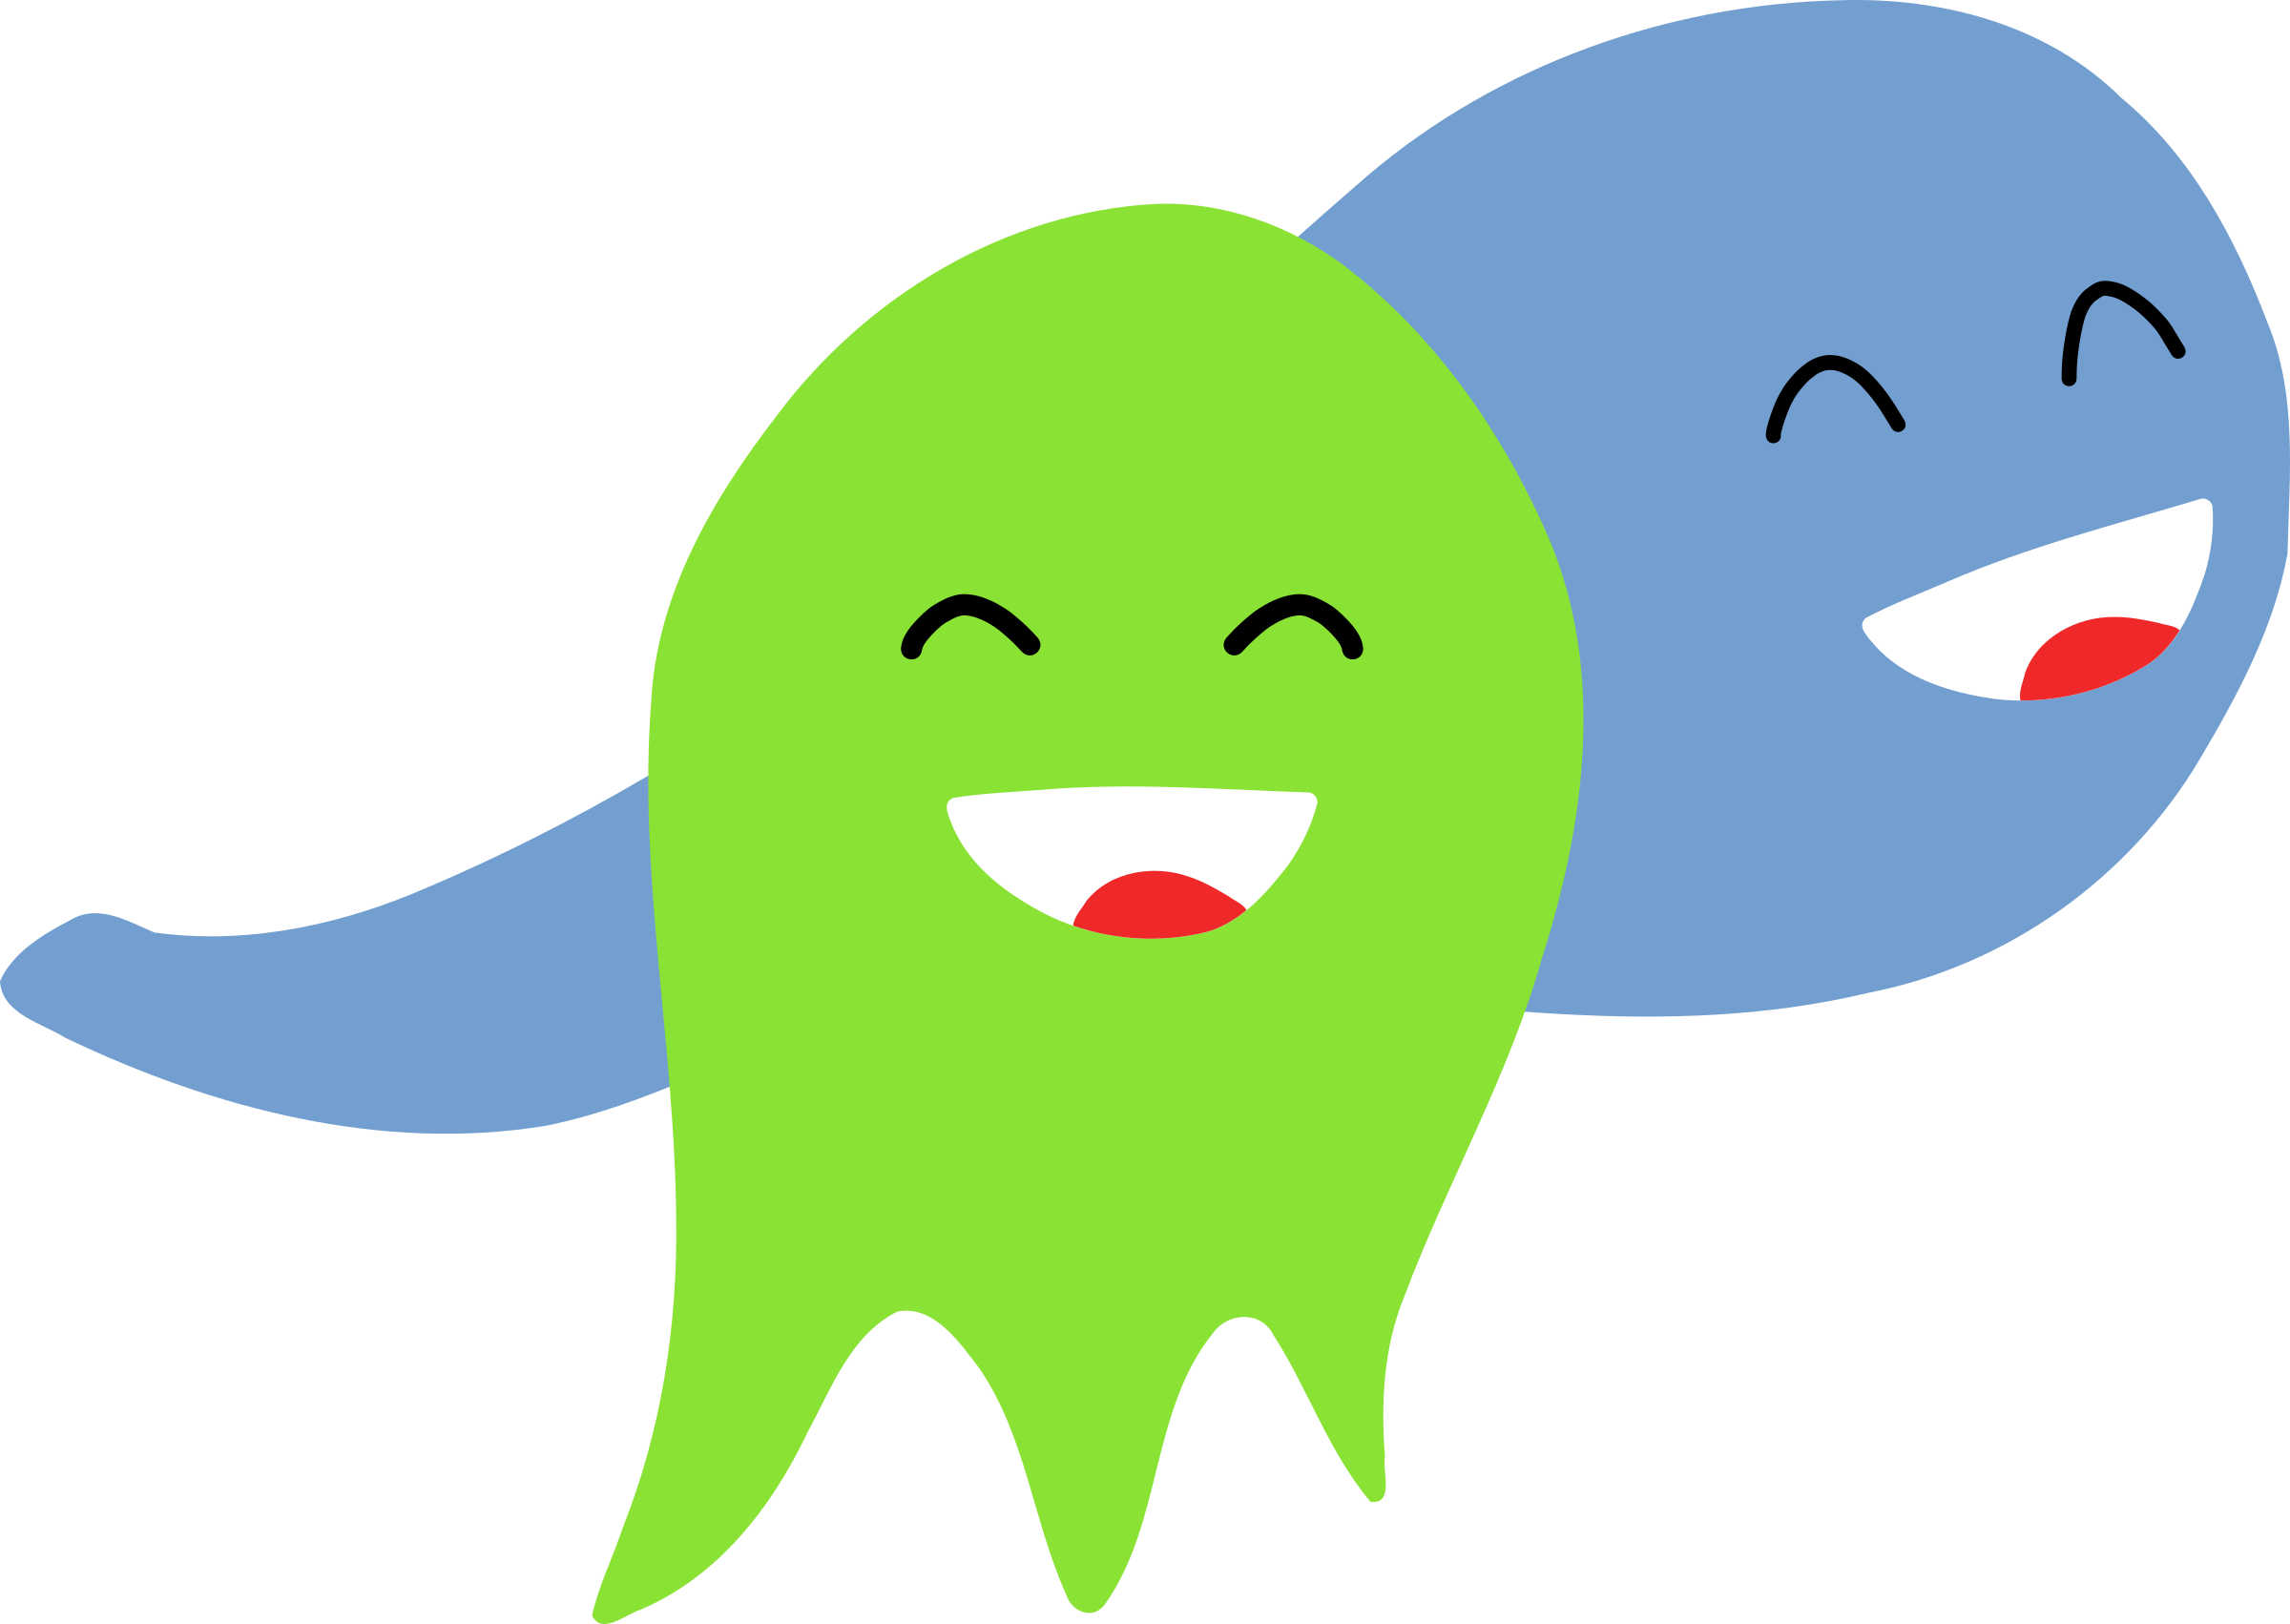 Two smiling ghosts by Kib